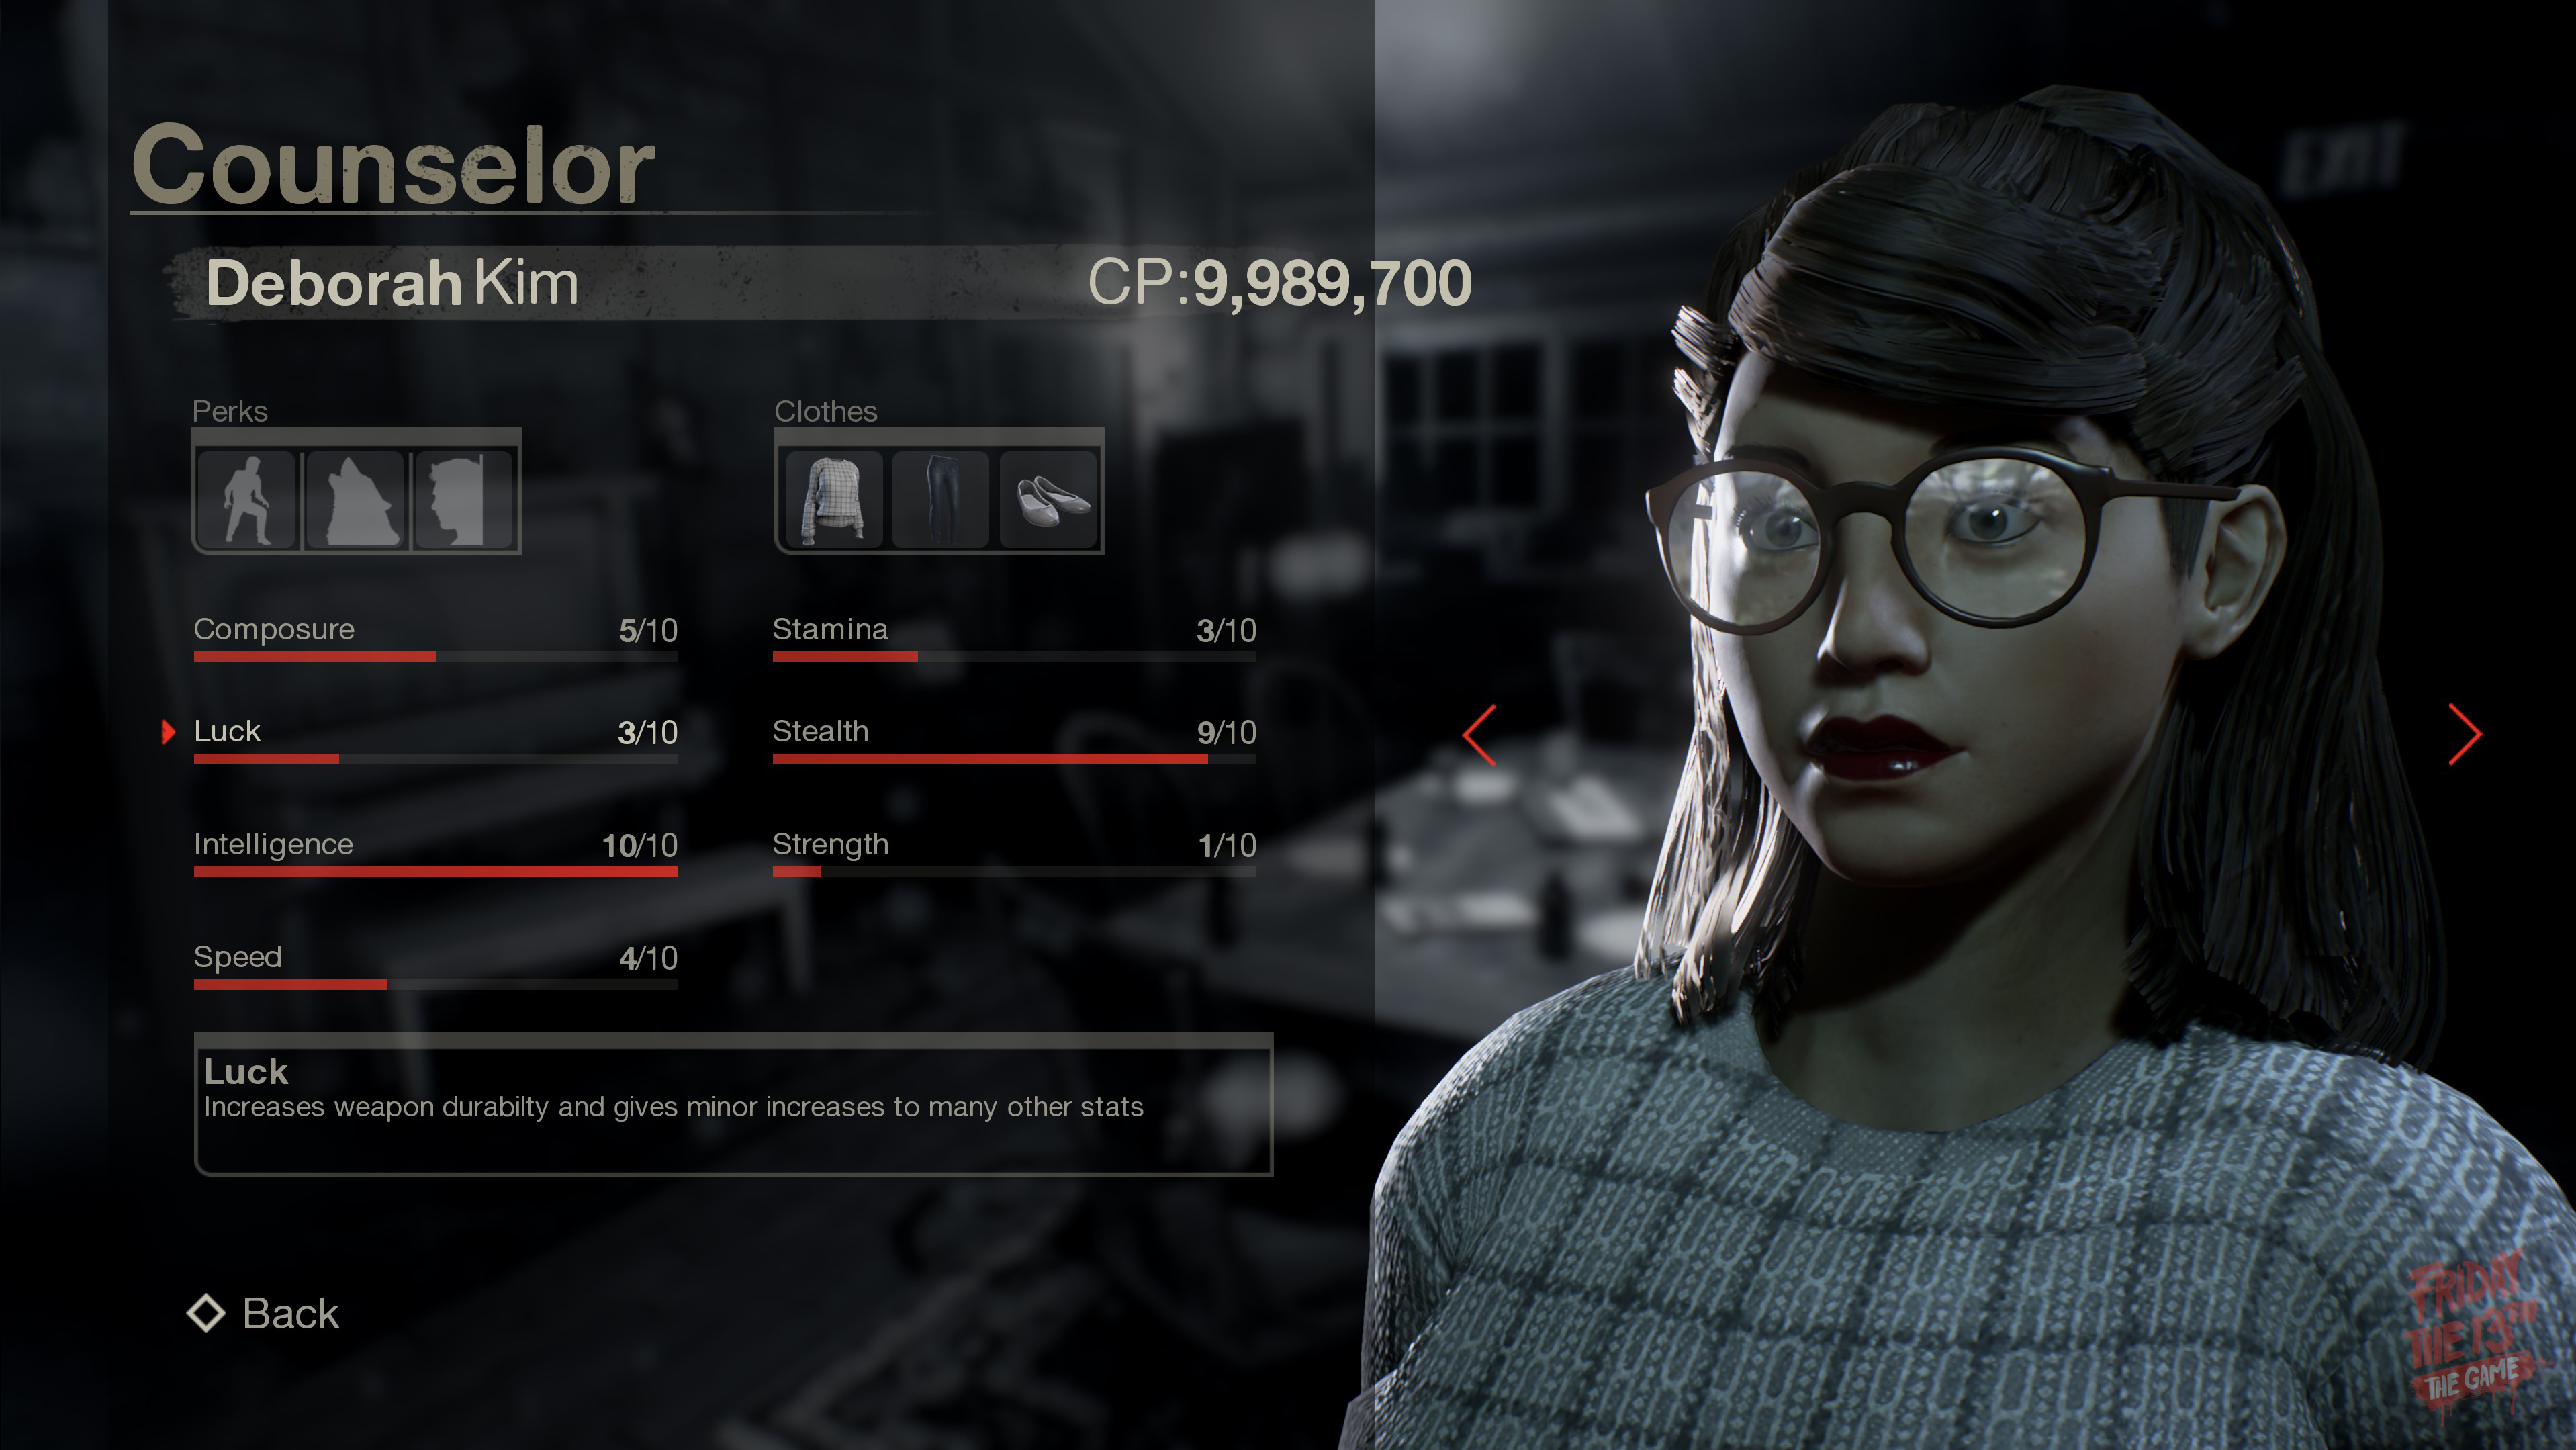 Deborah from Friday the 13th: The game